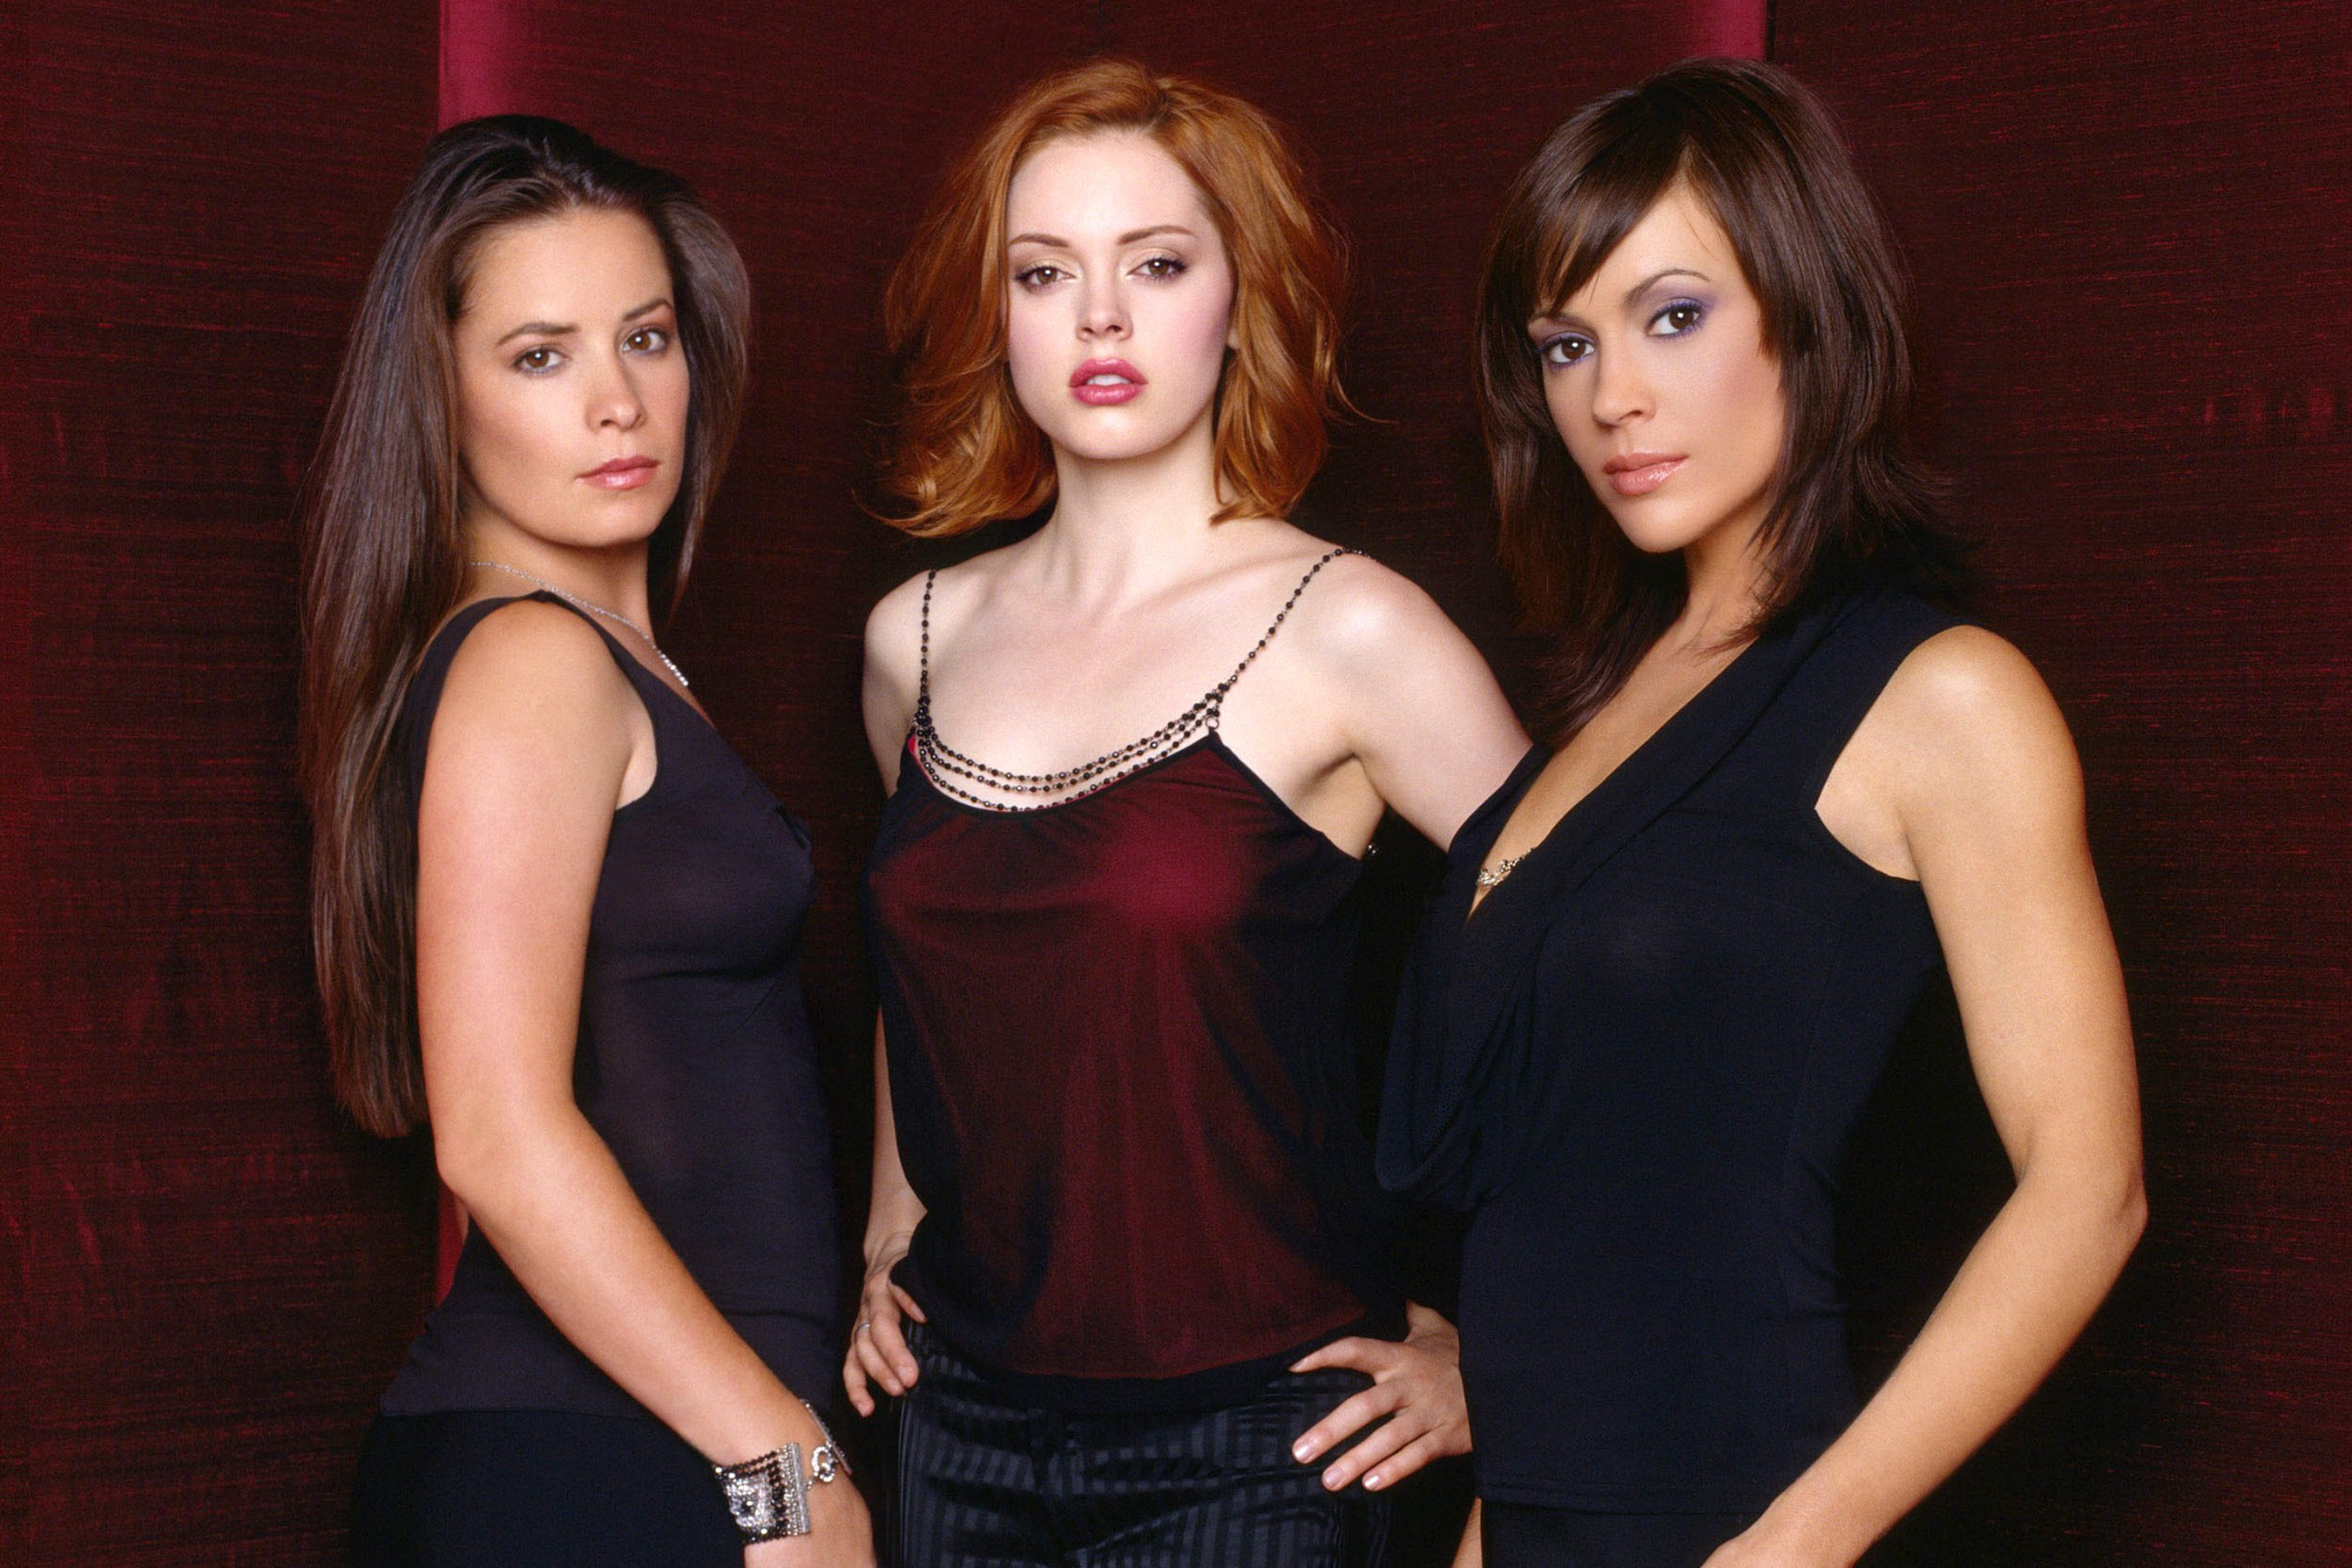 Charmed star disses The CW's reboot: Fans won't be fooled